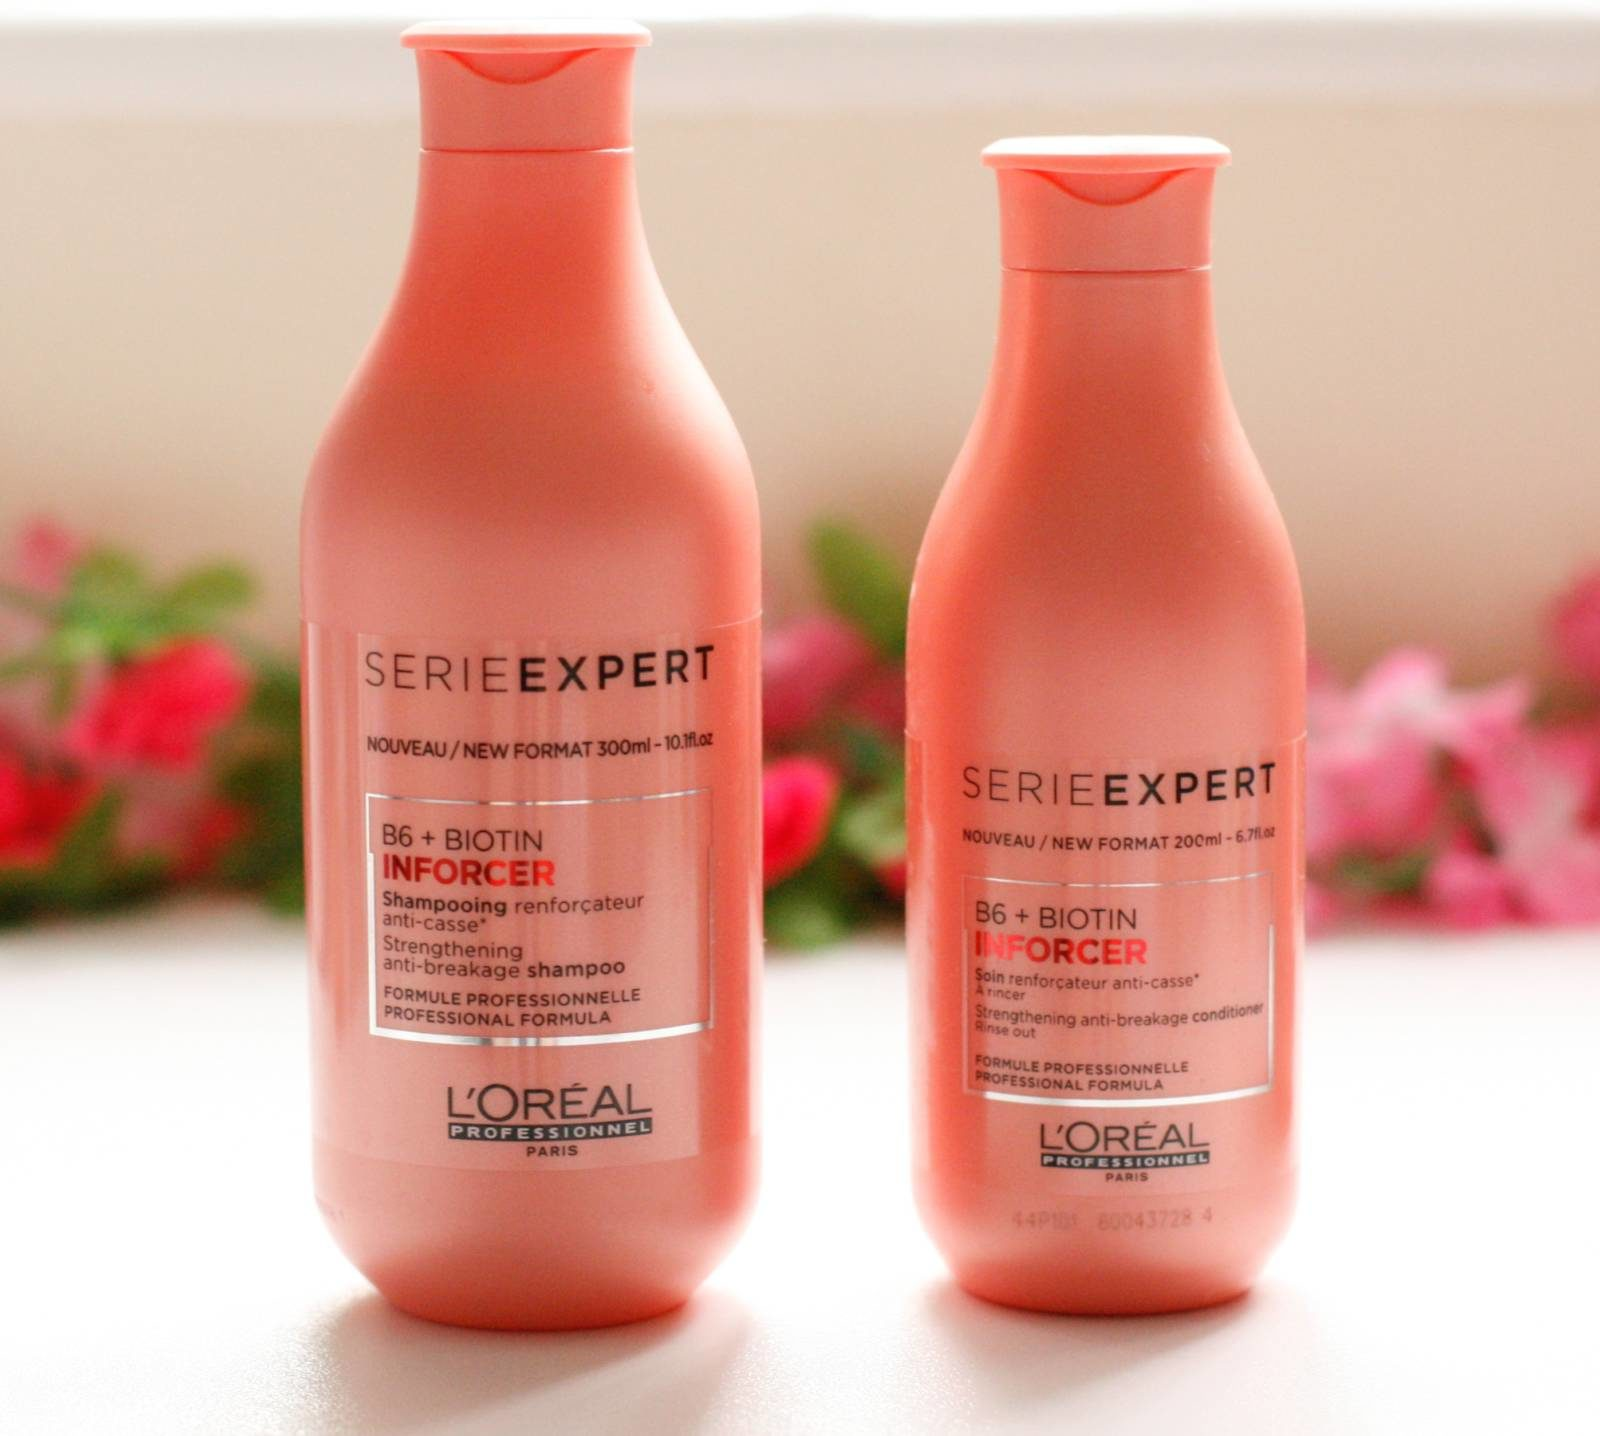 L'Oreal Serie Expert Inforcer Vitamin B6+ Biotin Shampoo, Conditioner Review